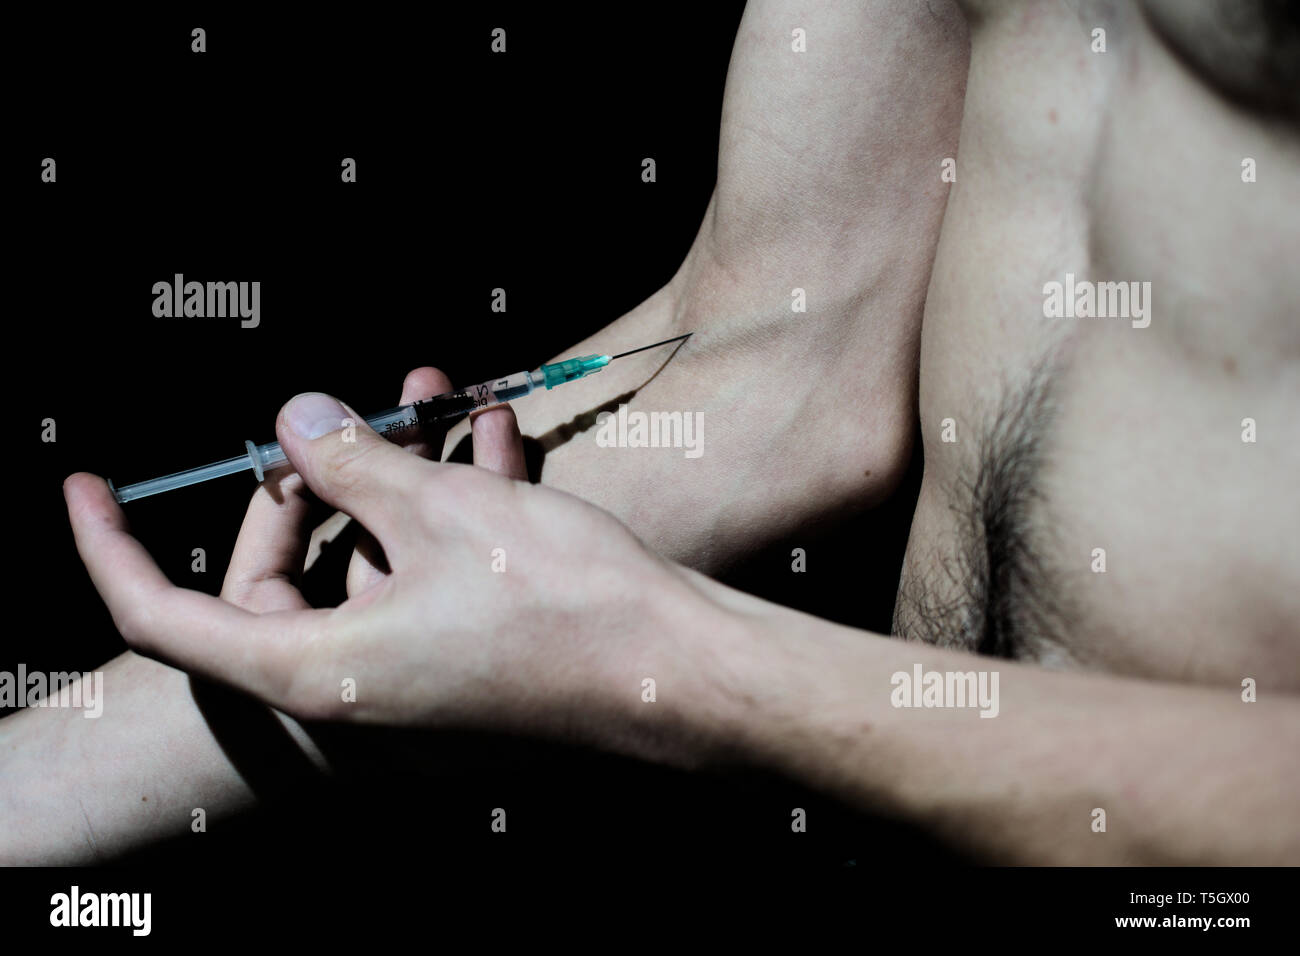 Dark studio shot of a bare chested man injecting heroin - Stock Image